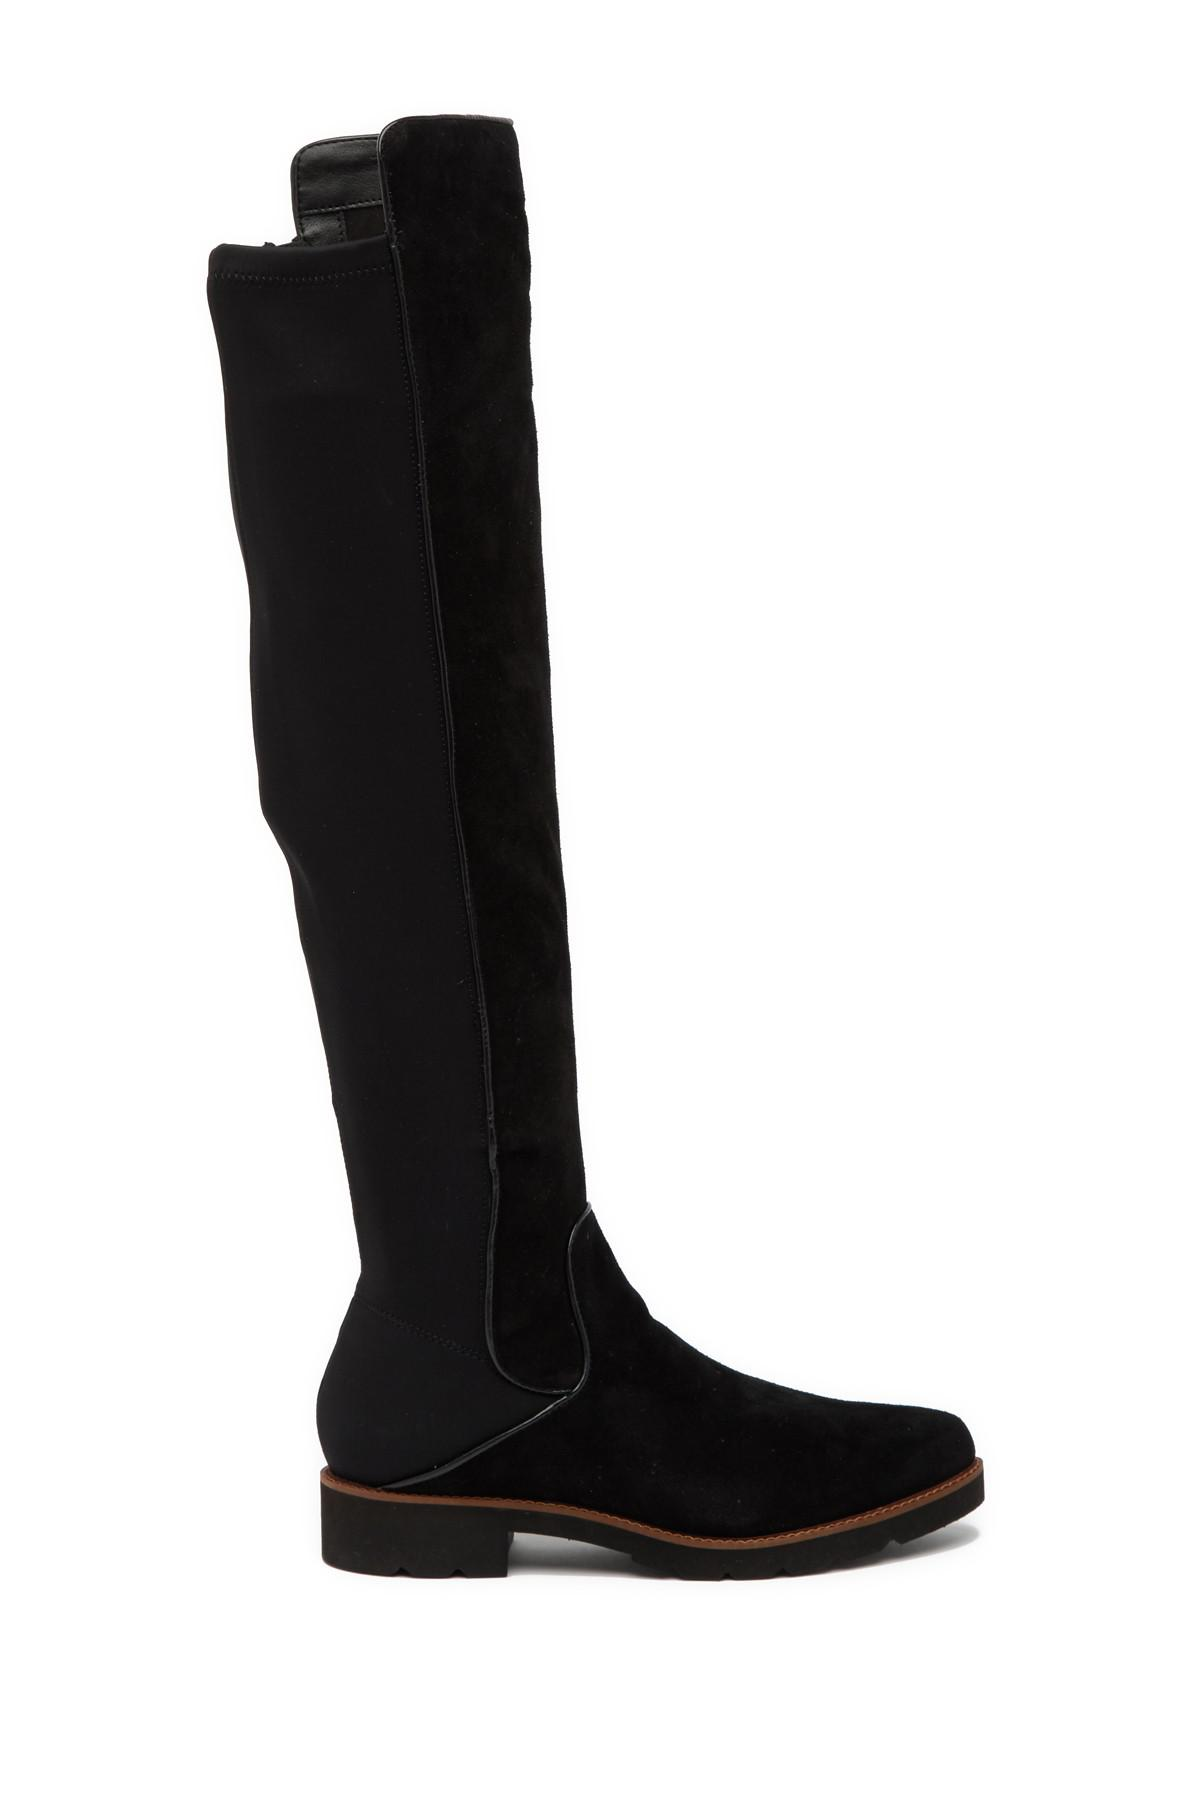 2c191bea82b Lyst - Franco Sarto Benner Suede Over-the-knee Boot in Black